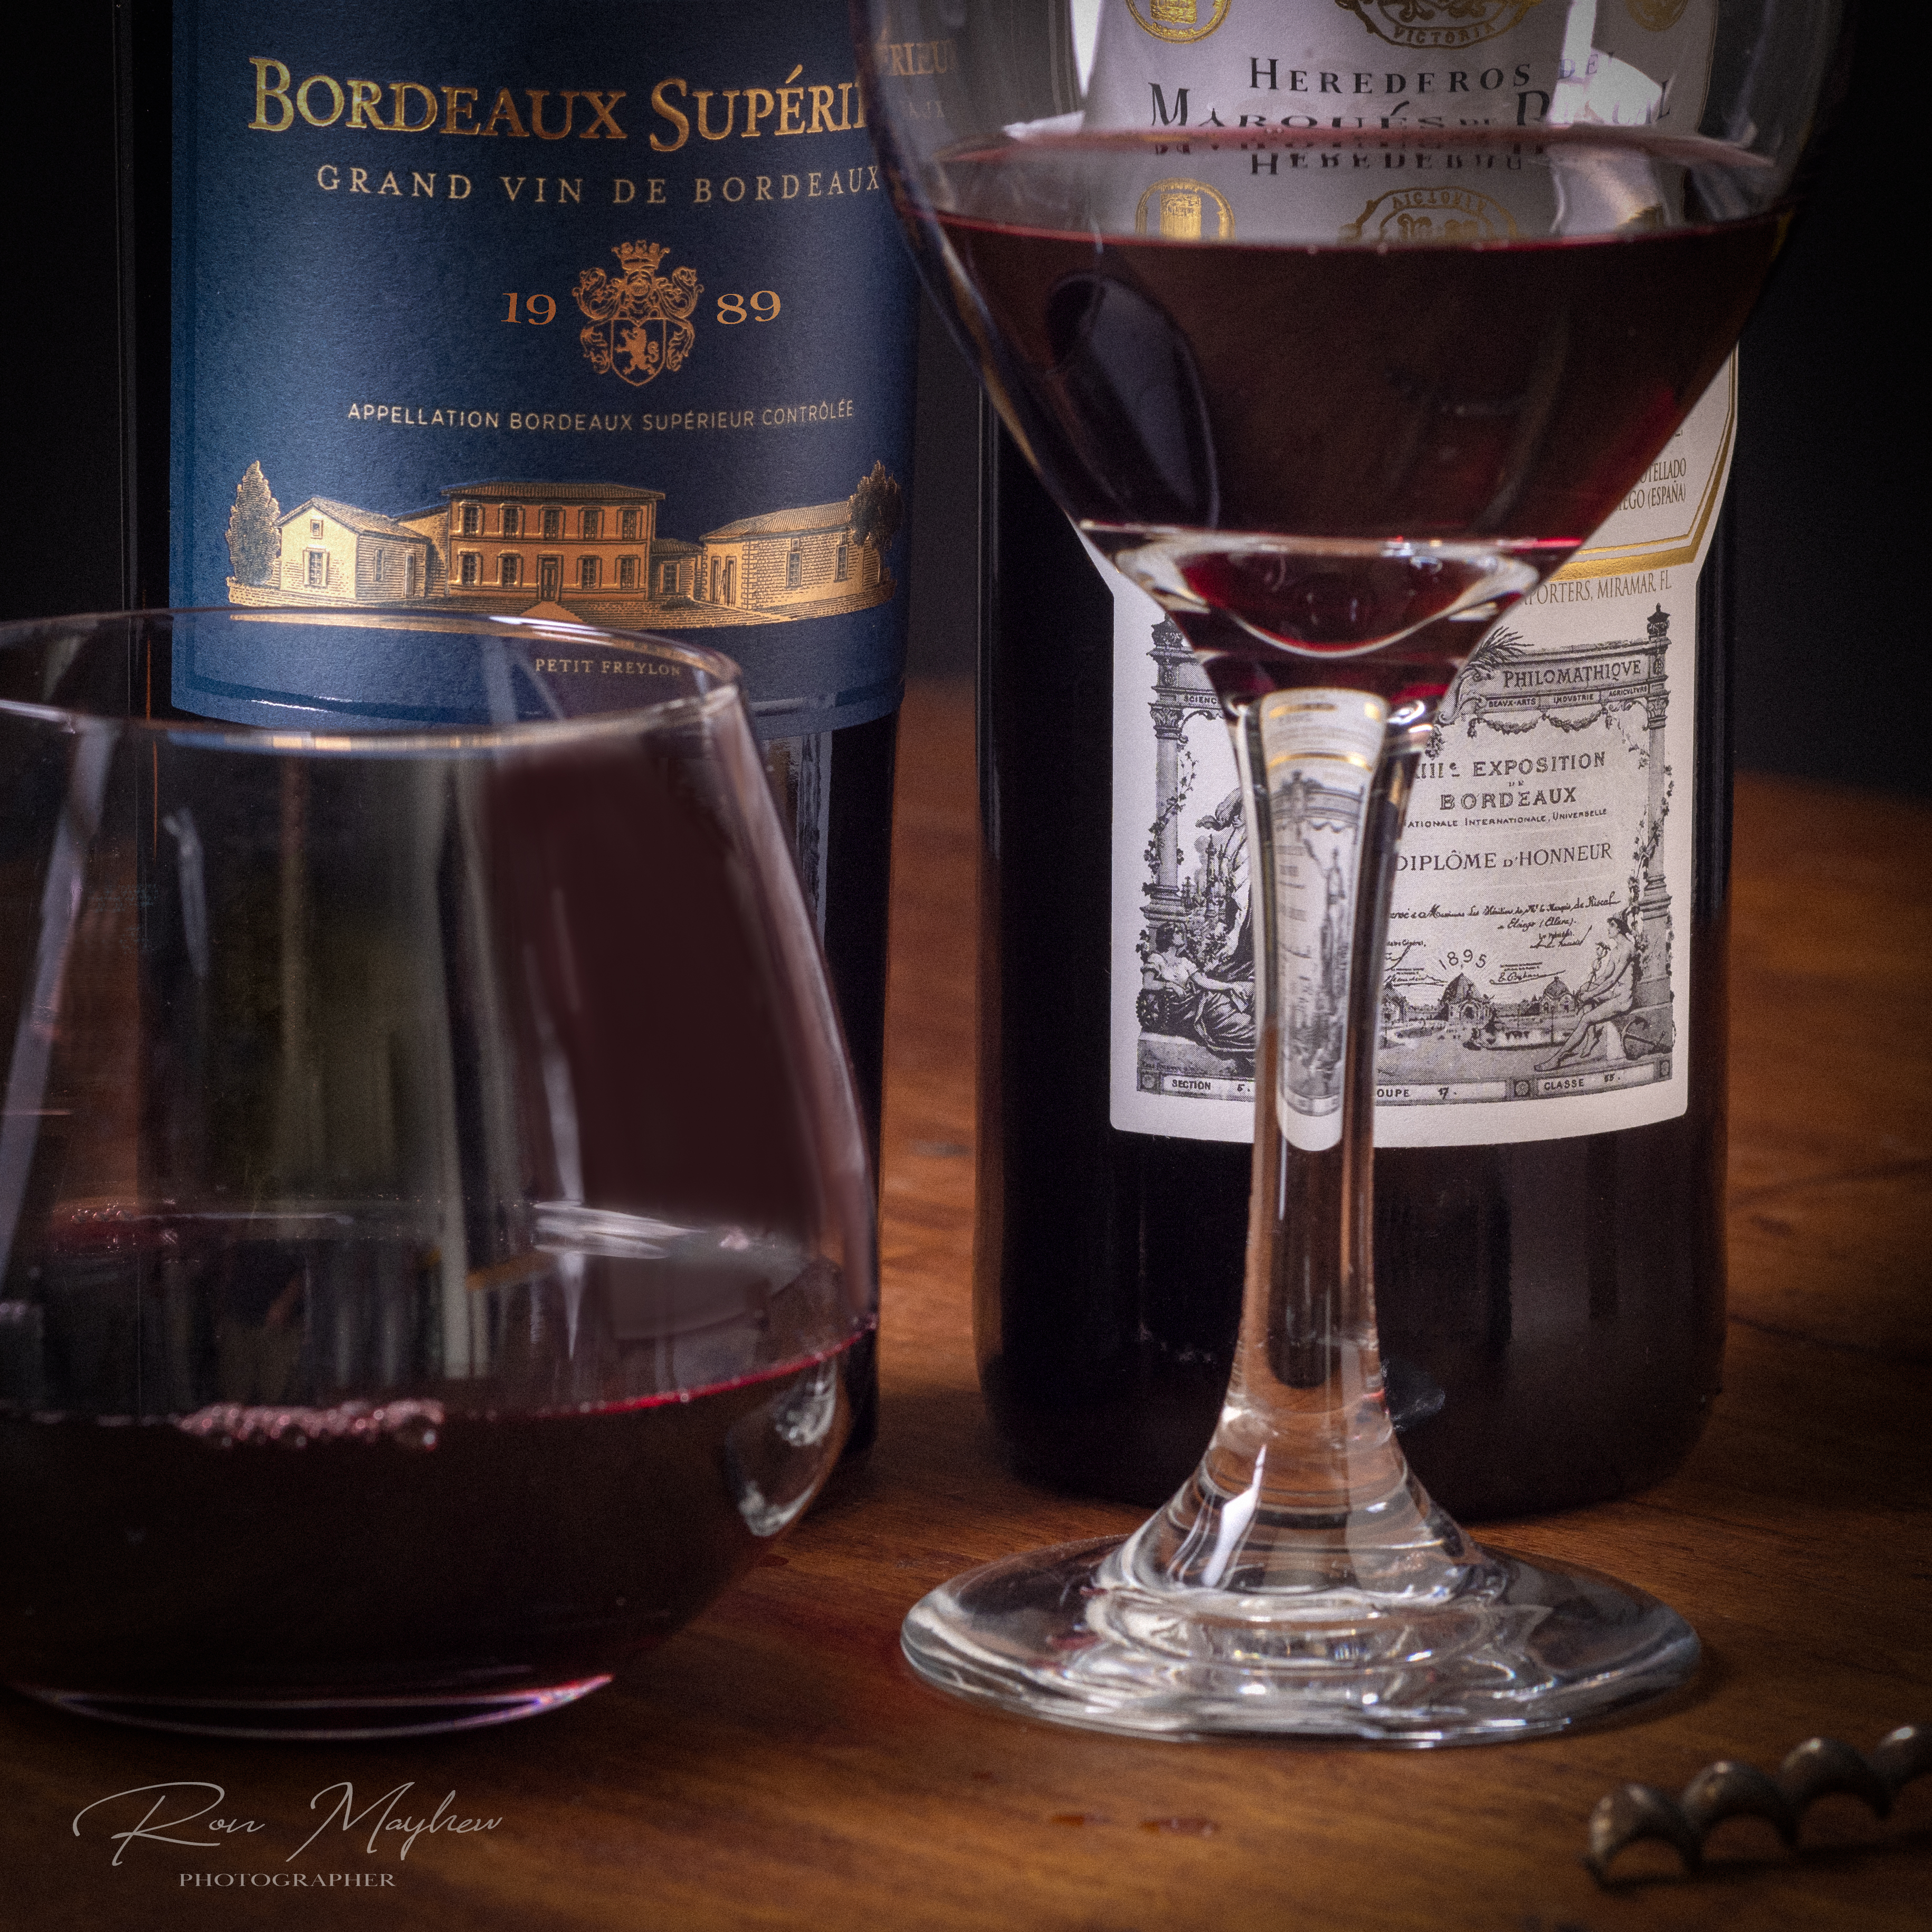 Bordeaux 1989 – It was a Very Good Year